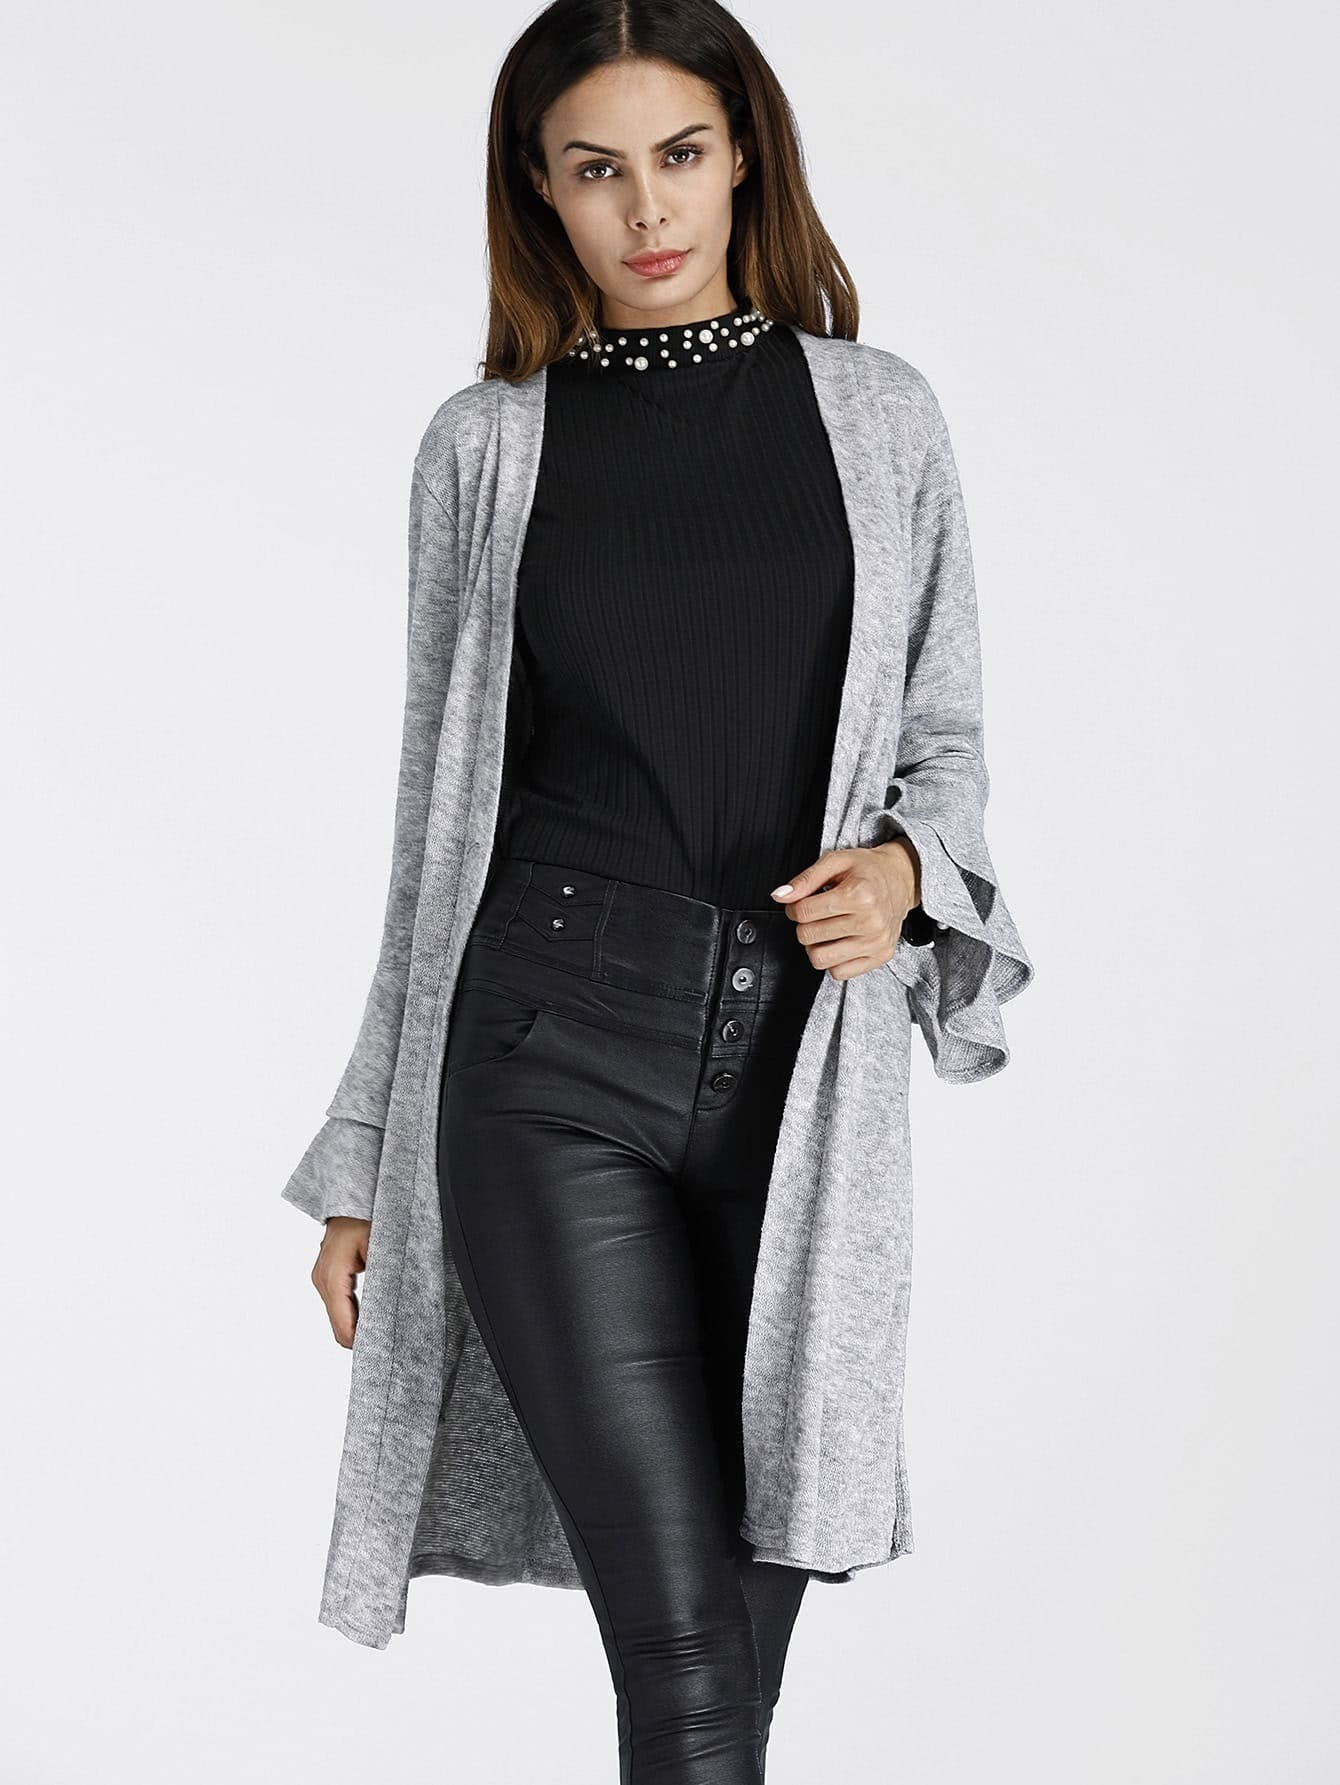 Tiered Frill Sleeve Marled Knit Cardigan